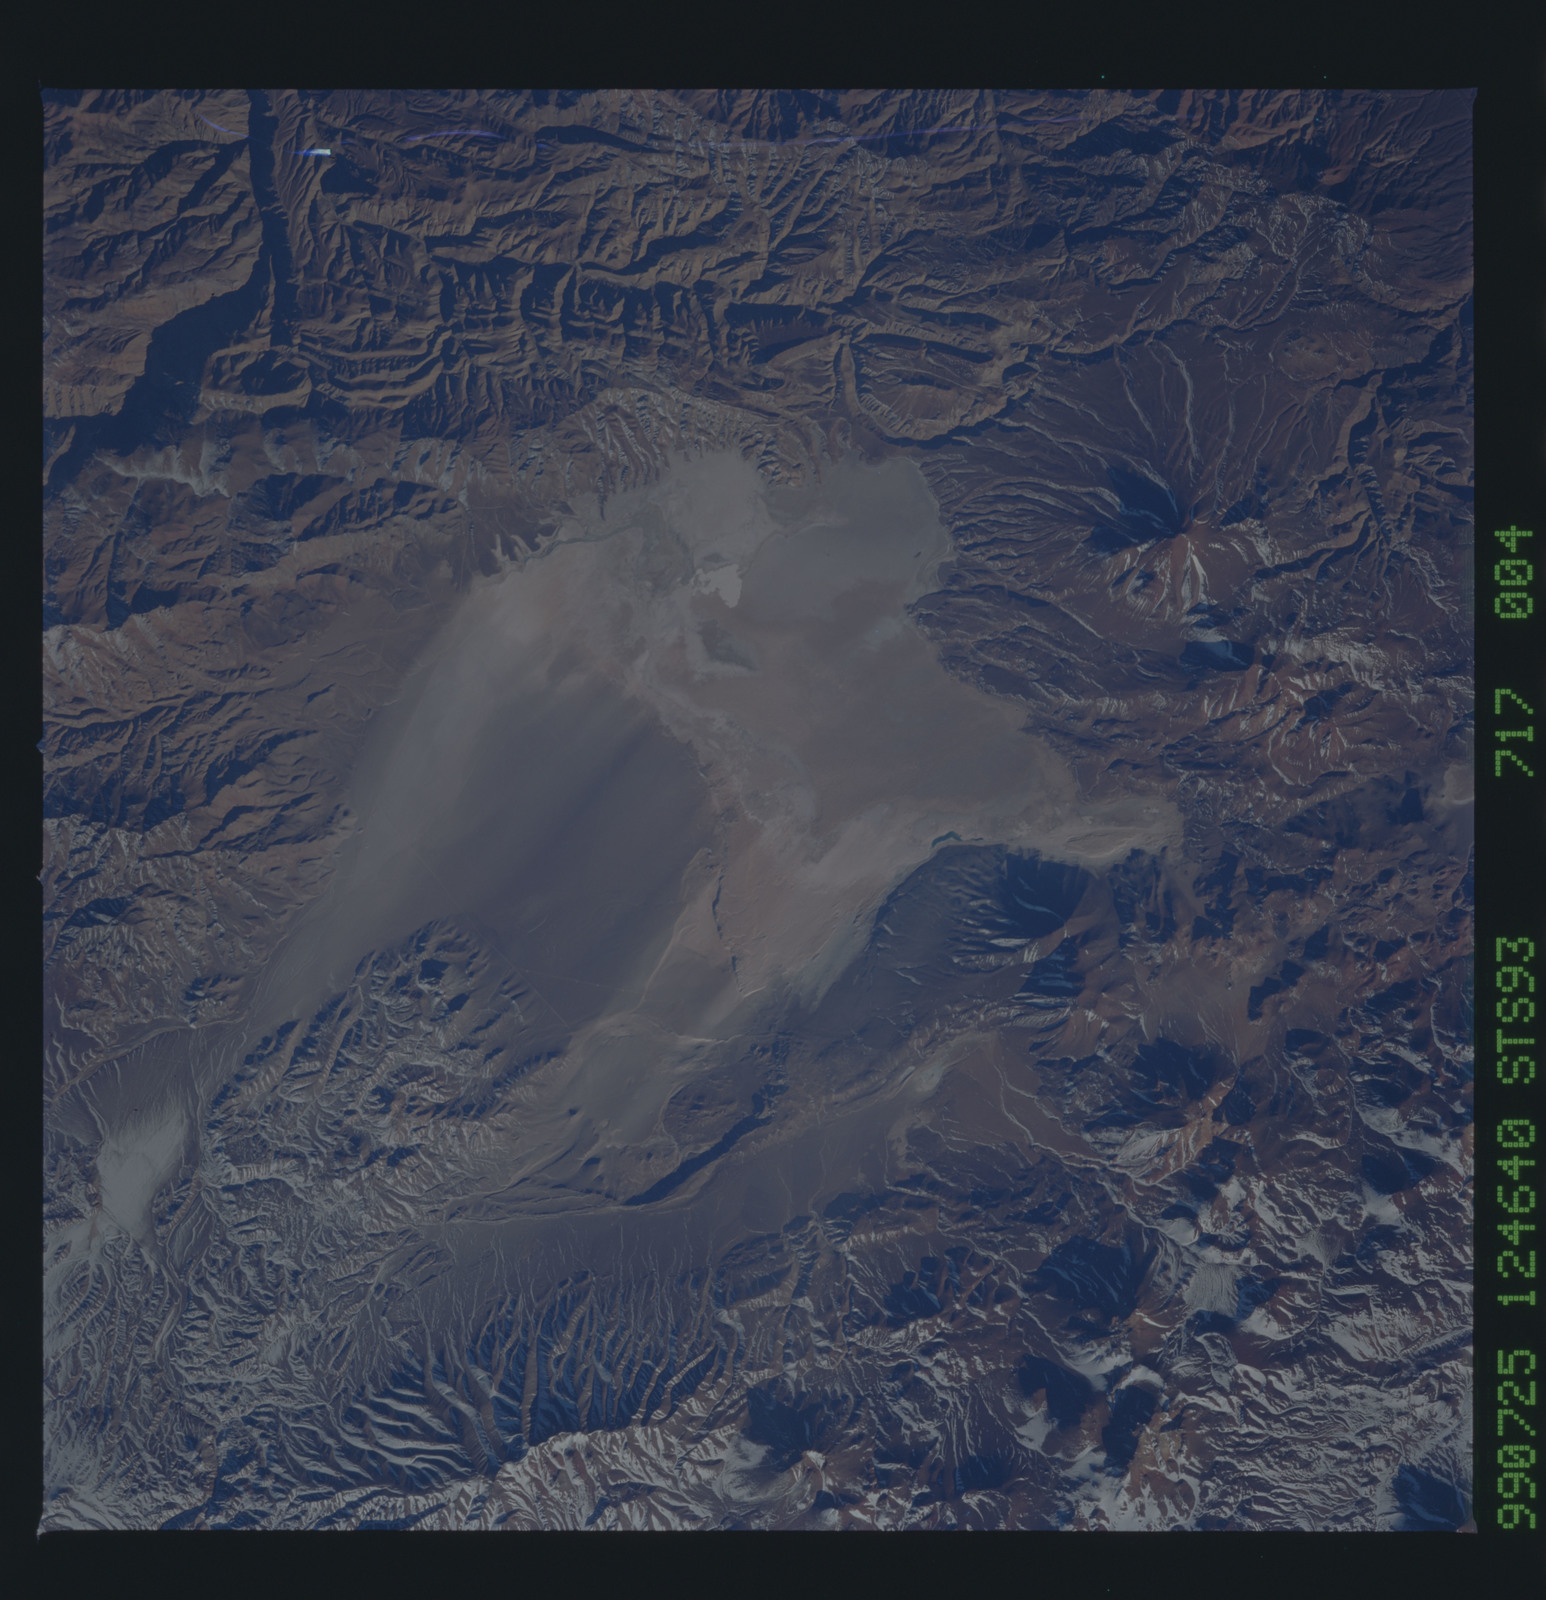 STS093-717-004 - STS-093 - Earth observations of the Andes Mts. taken from Columbia during STS-93 mission